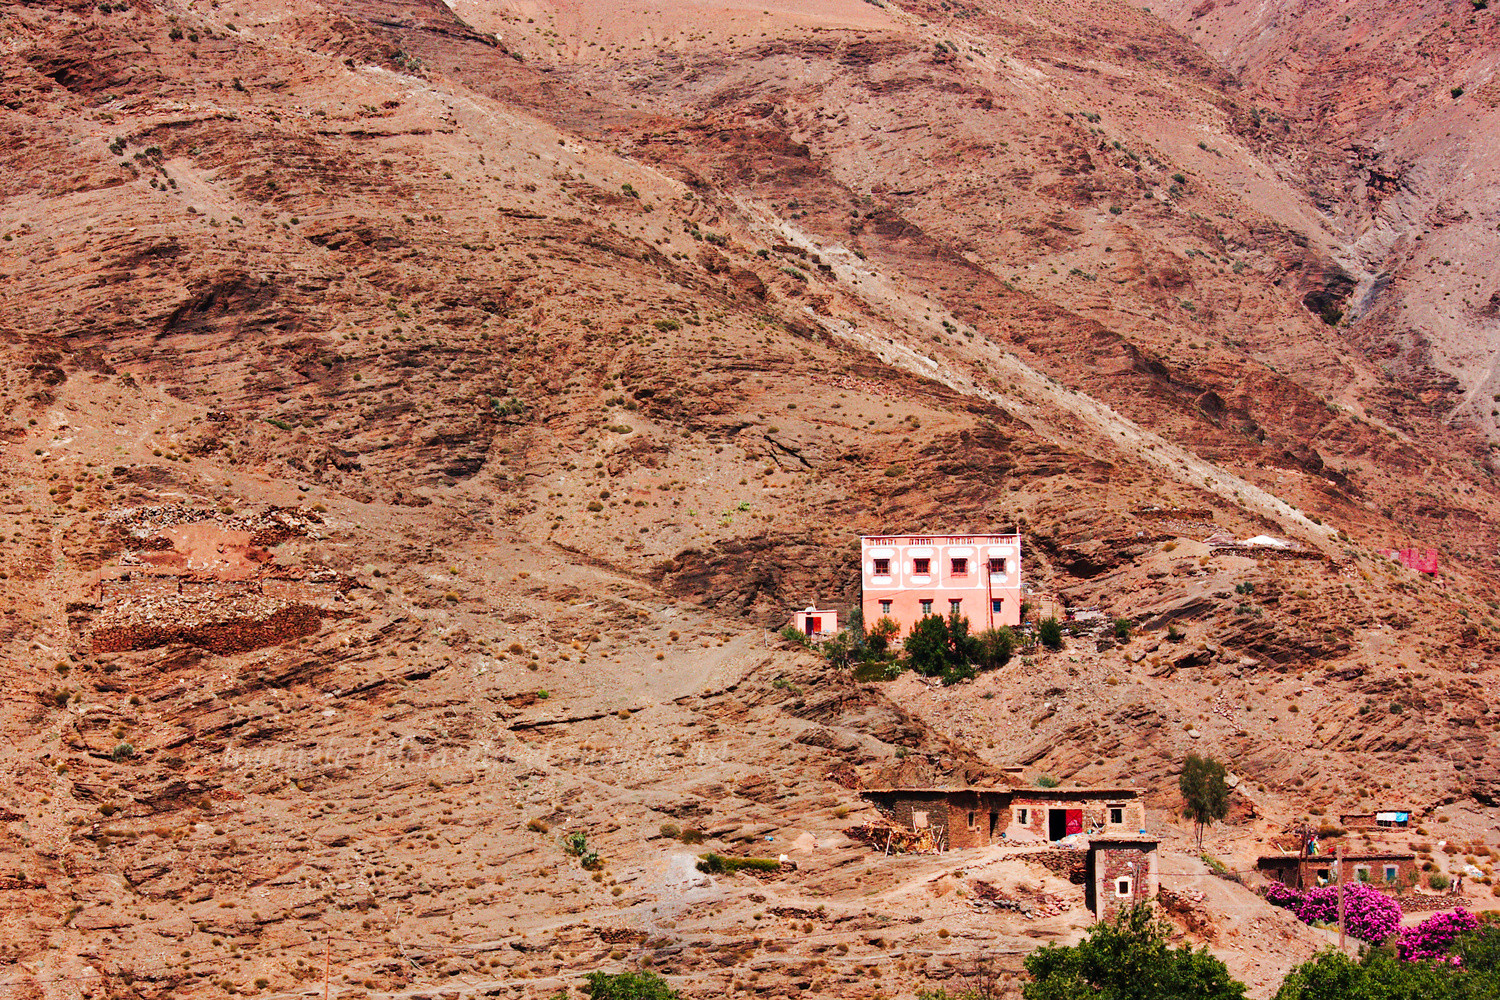 A house seen from a car in the Rif mountains of Morocco. Tips for Taking Better Pictures from a Moving Vehicle